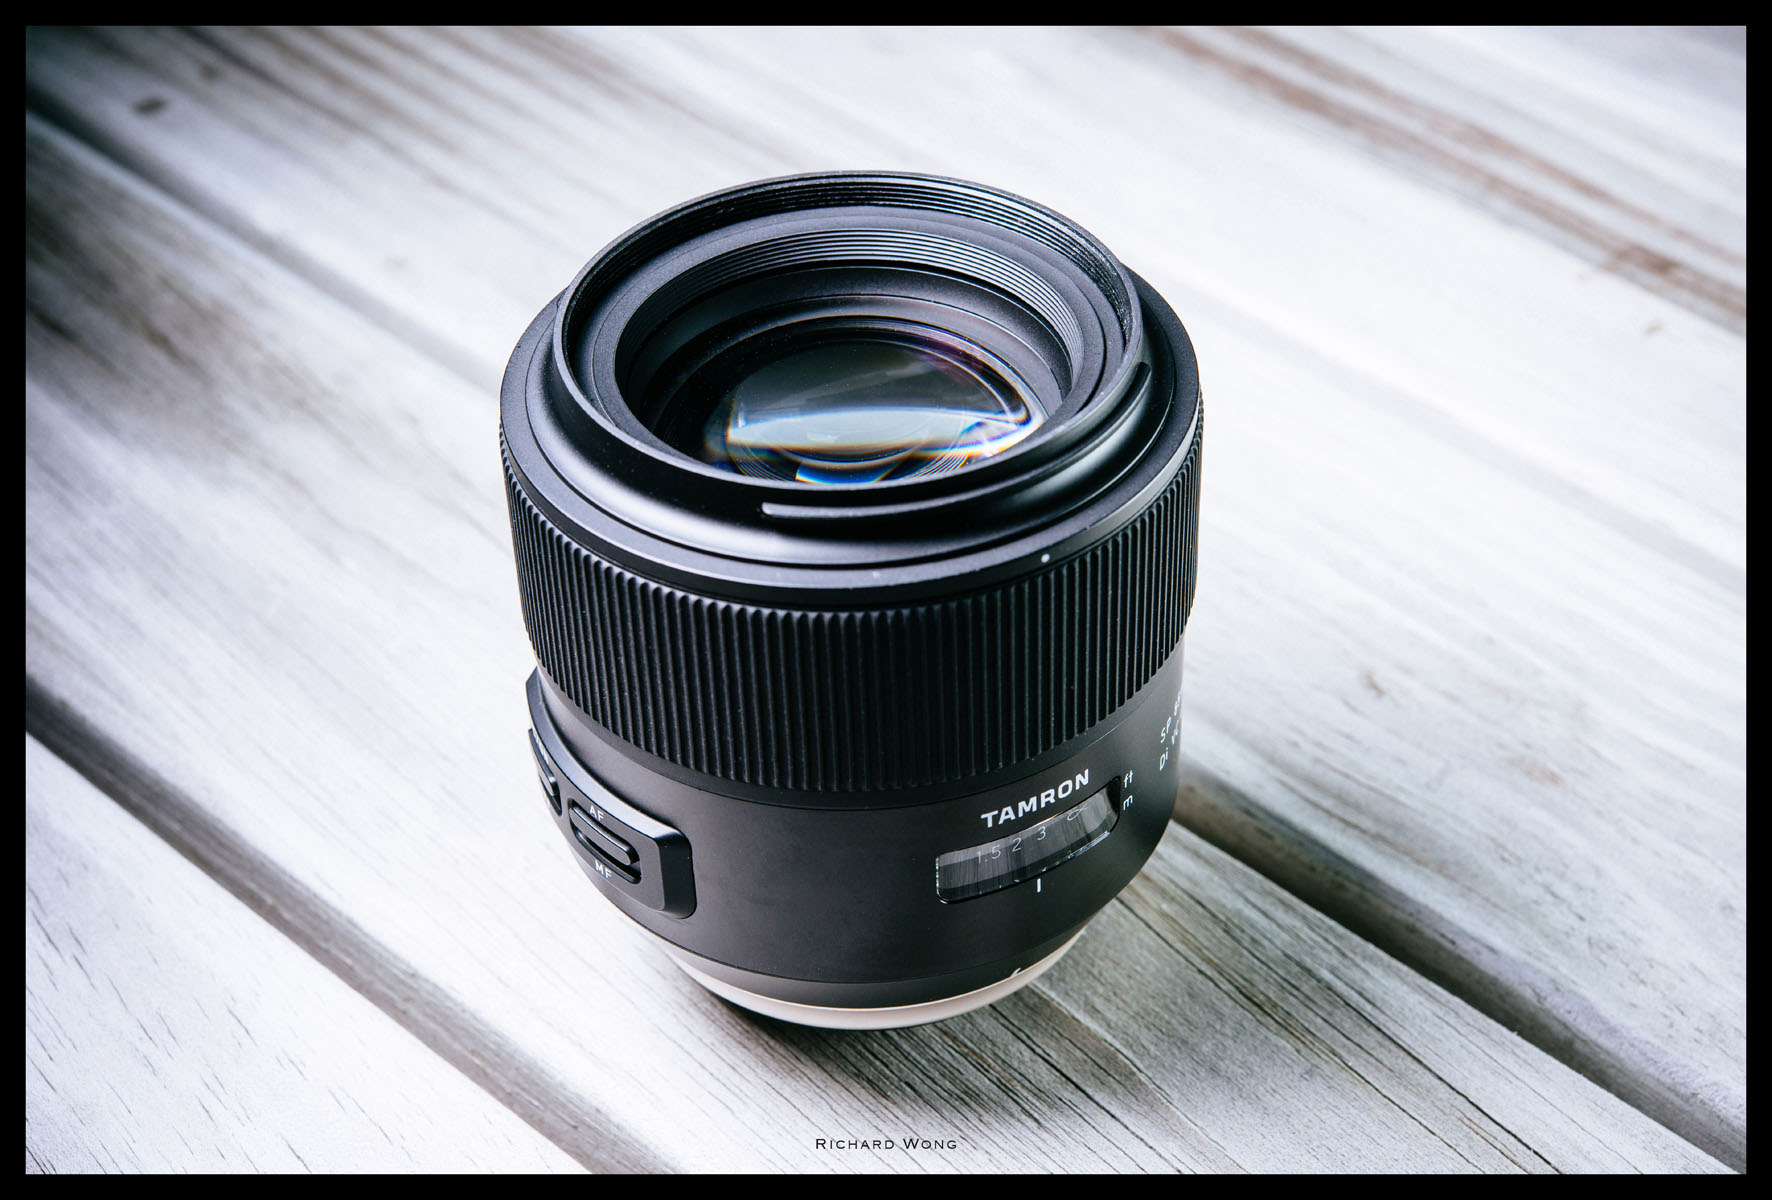 Tamron-f016-85mm-f1.8-vc-review-04